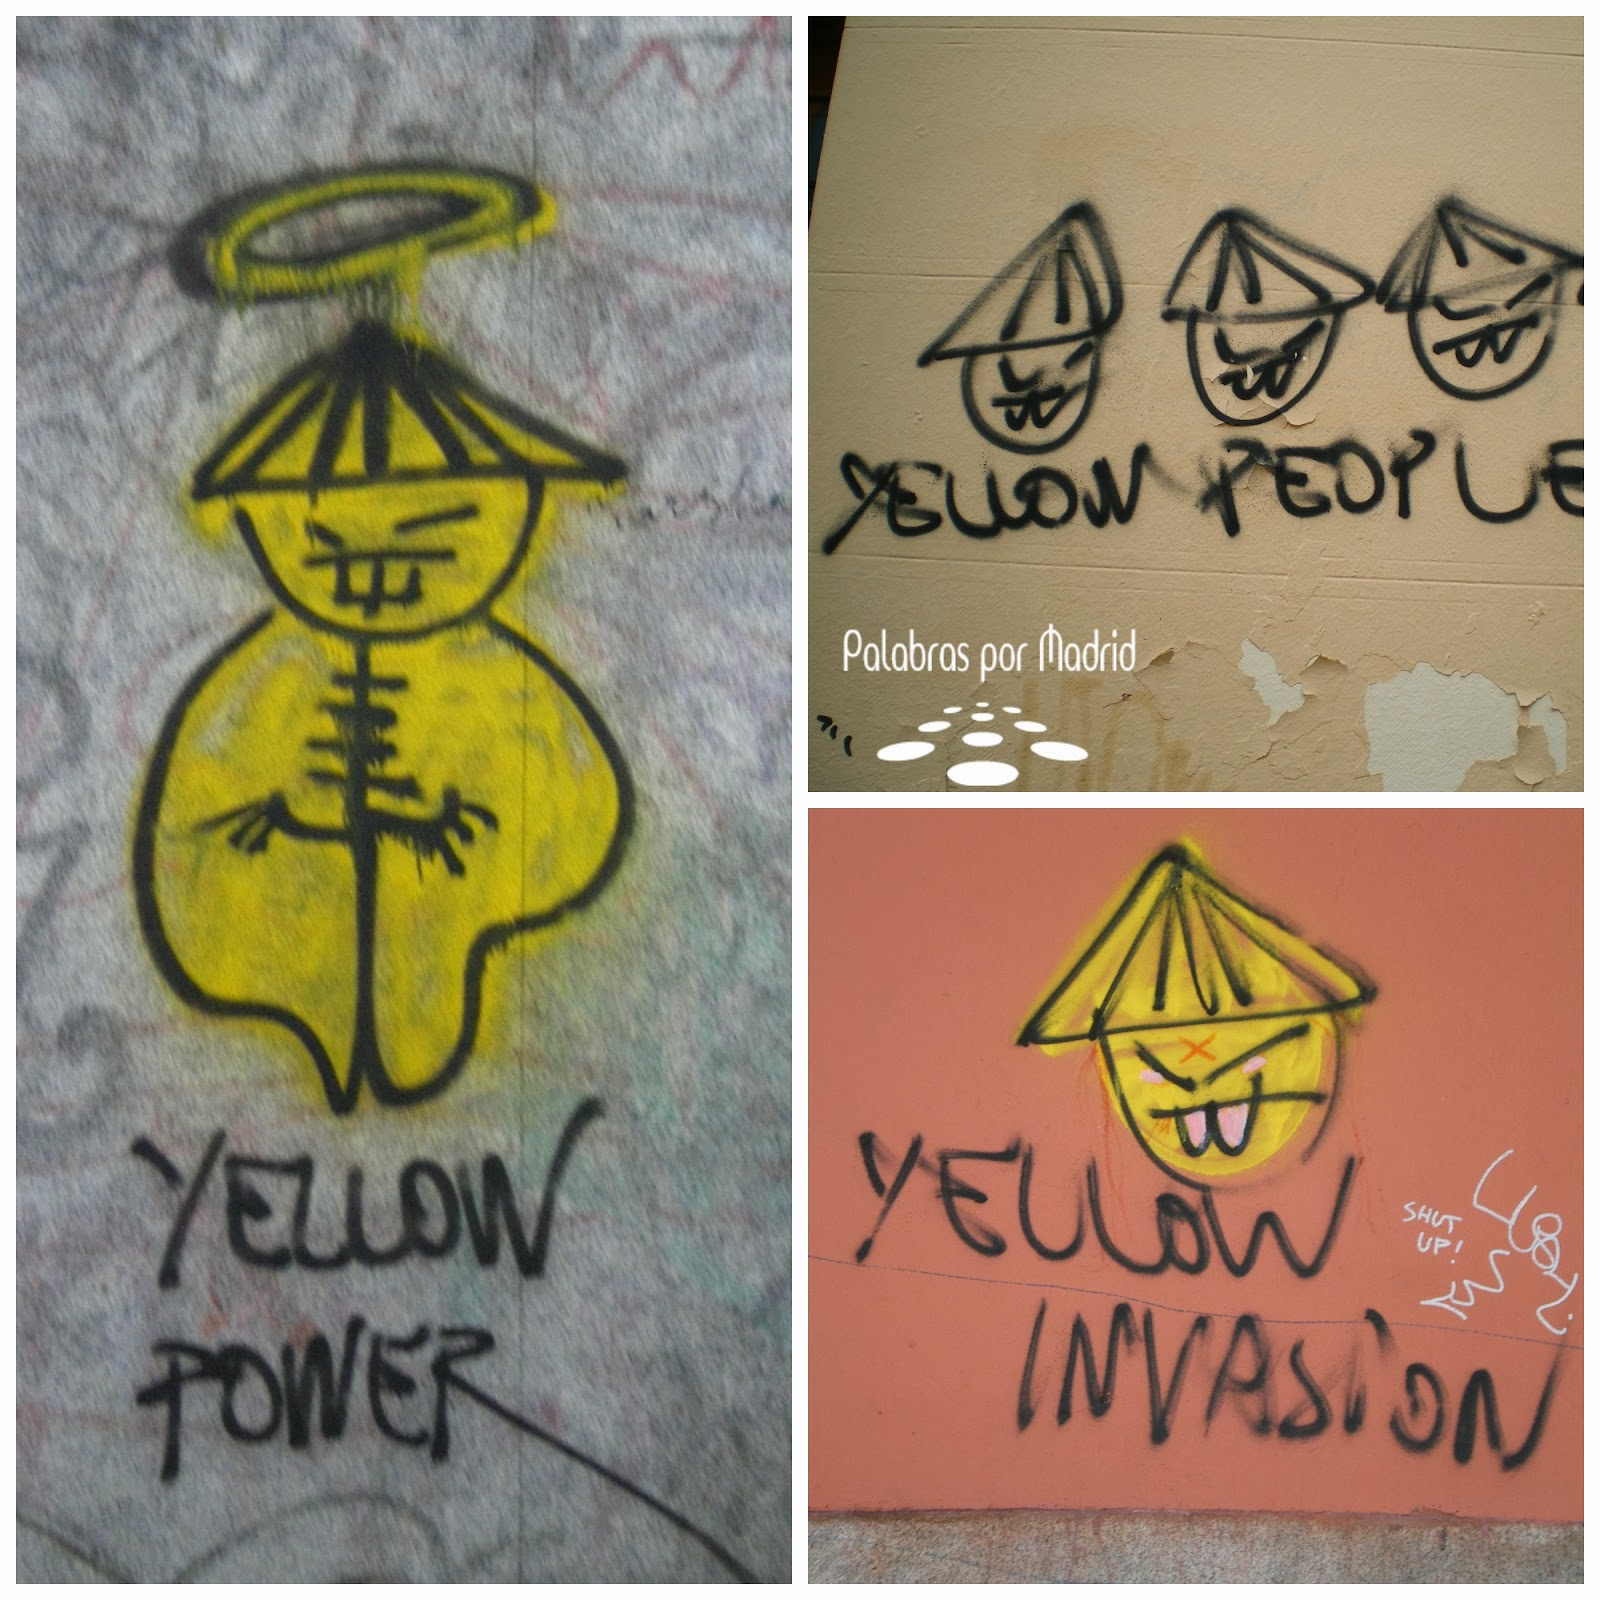 yellow power